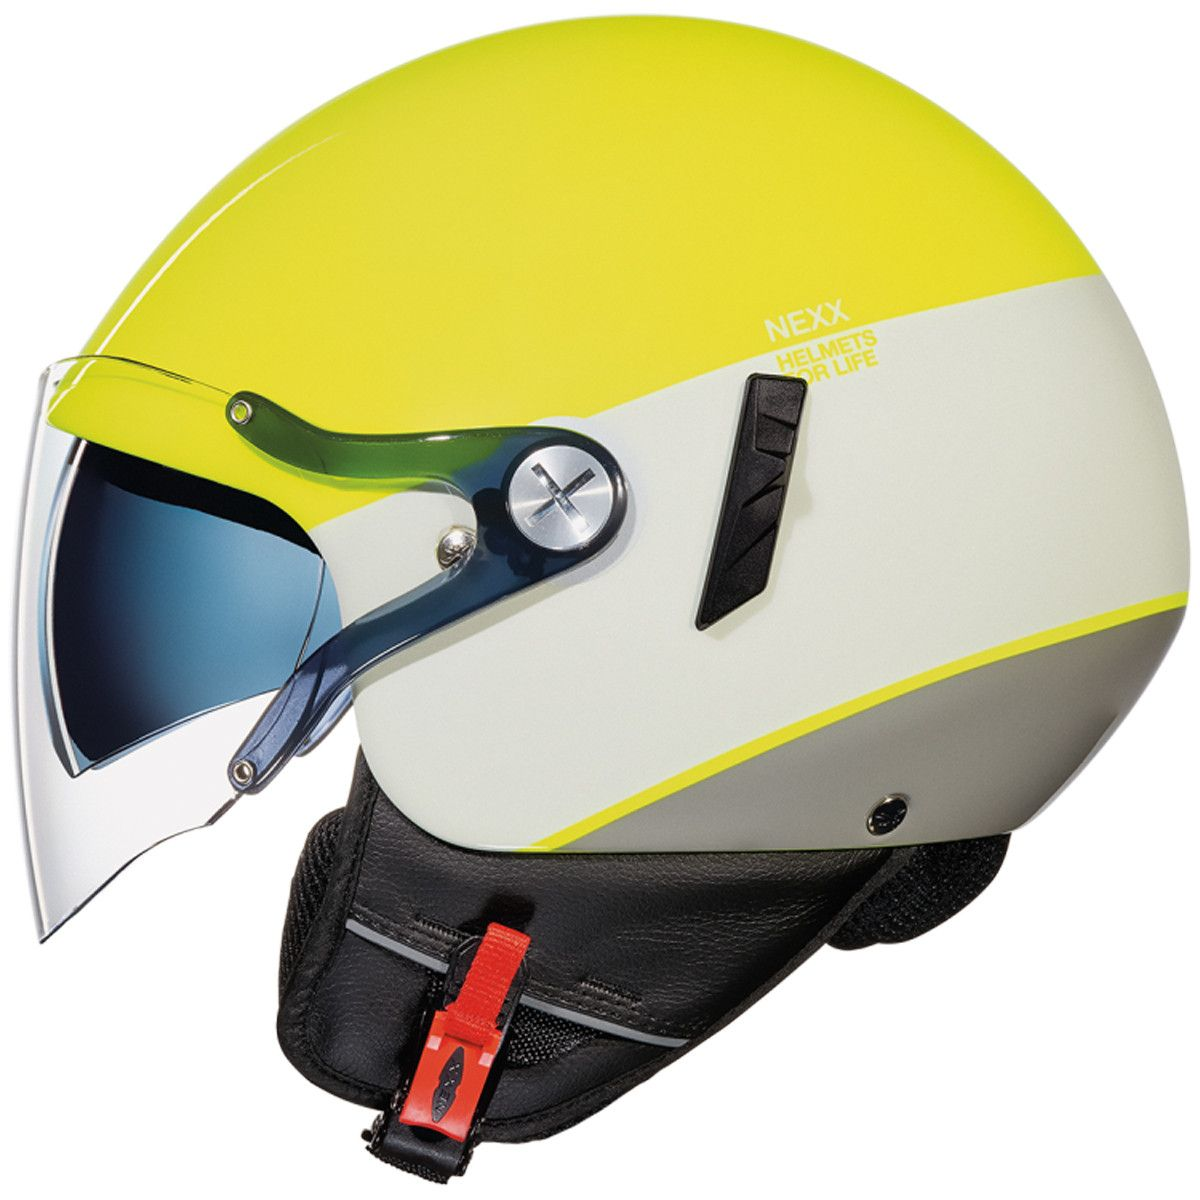 02301dfb Nexx SX60 Smart 2 Helmet in Yellow/White/Grey - With all the features you  need for city riding and plenty of graphics to chose from, the SX60 is the  perfect ...